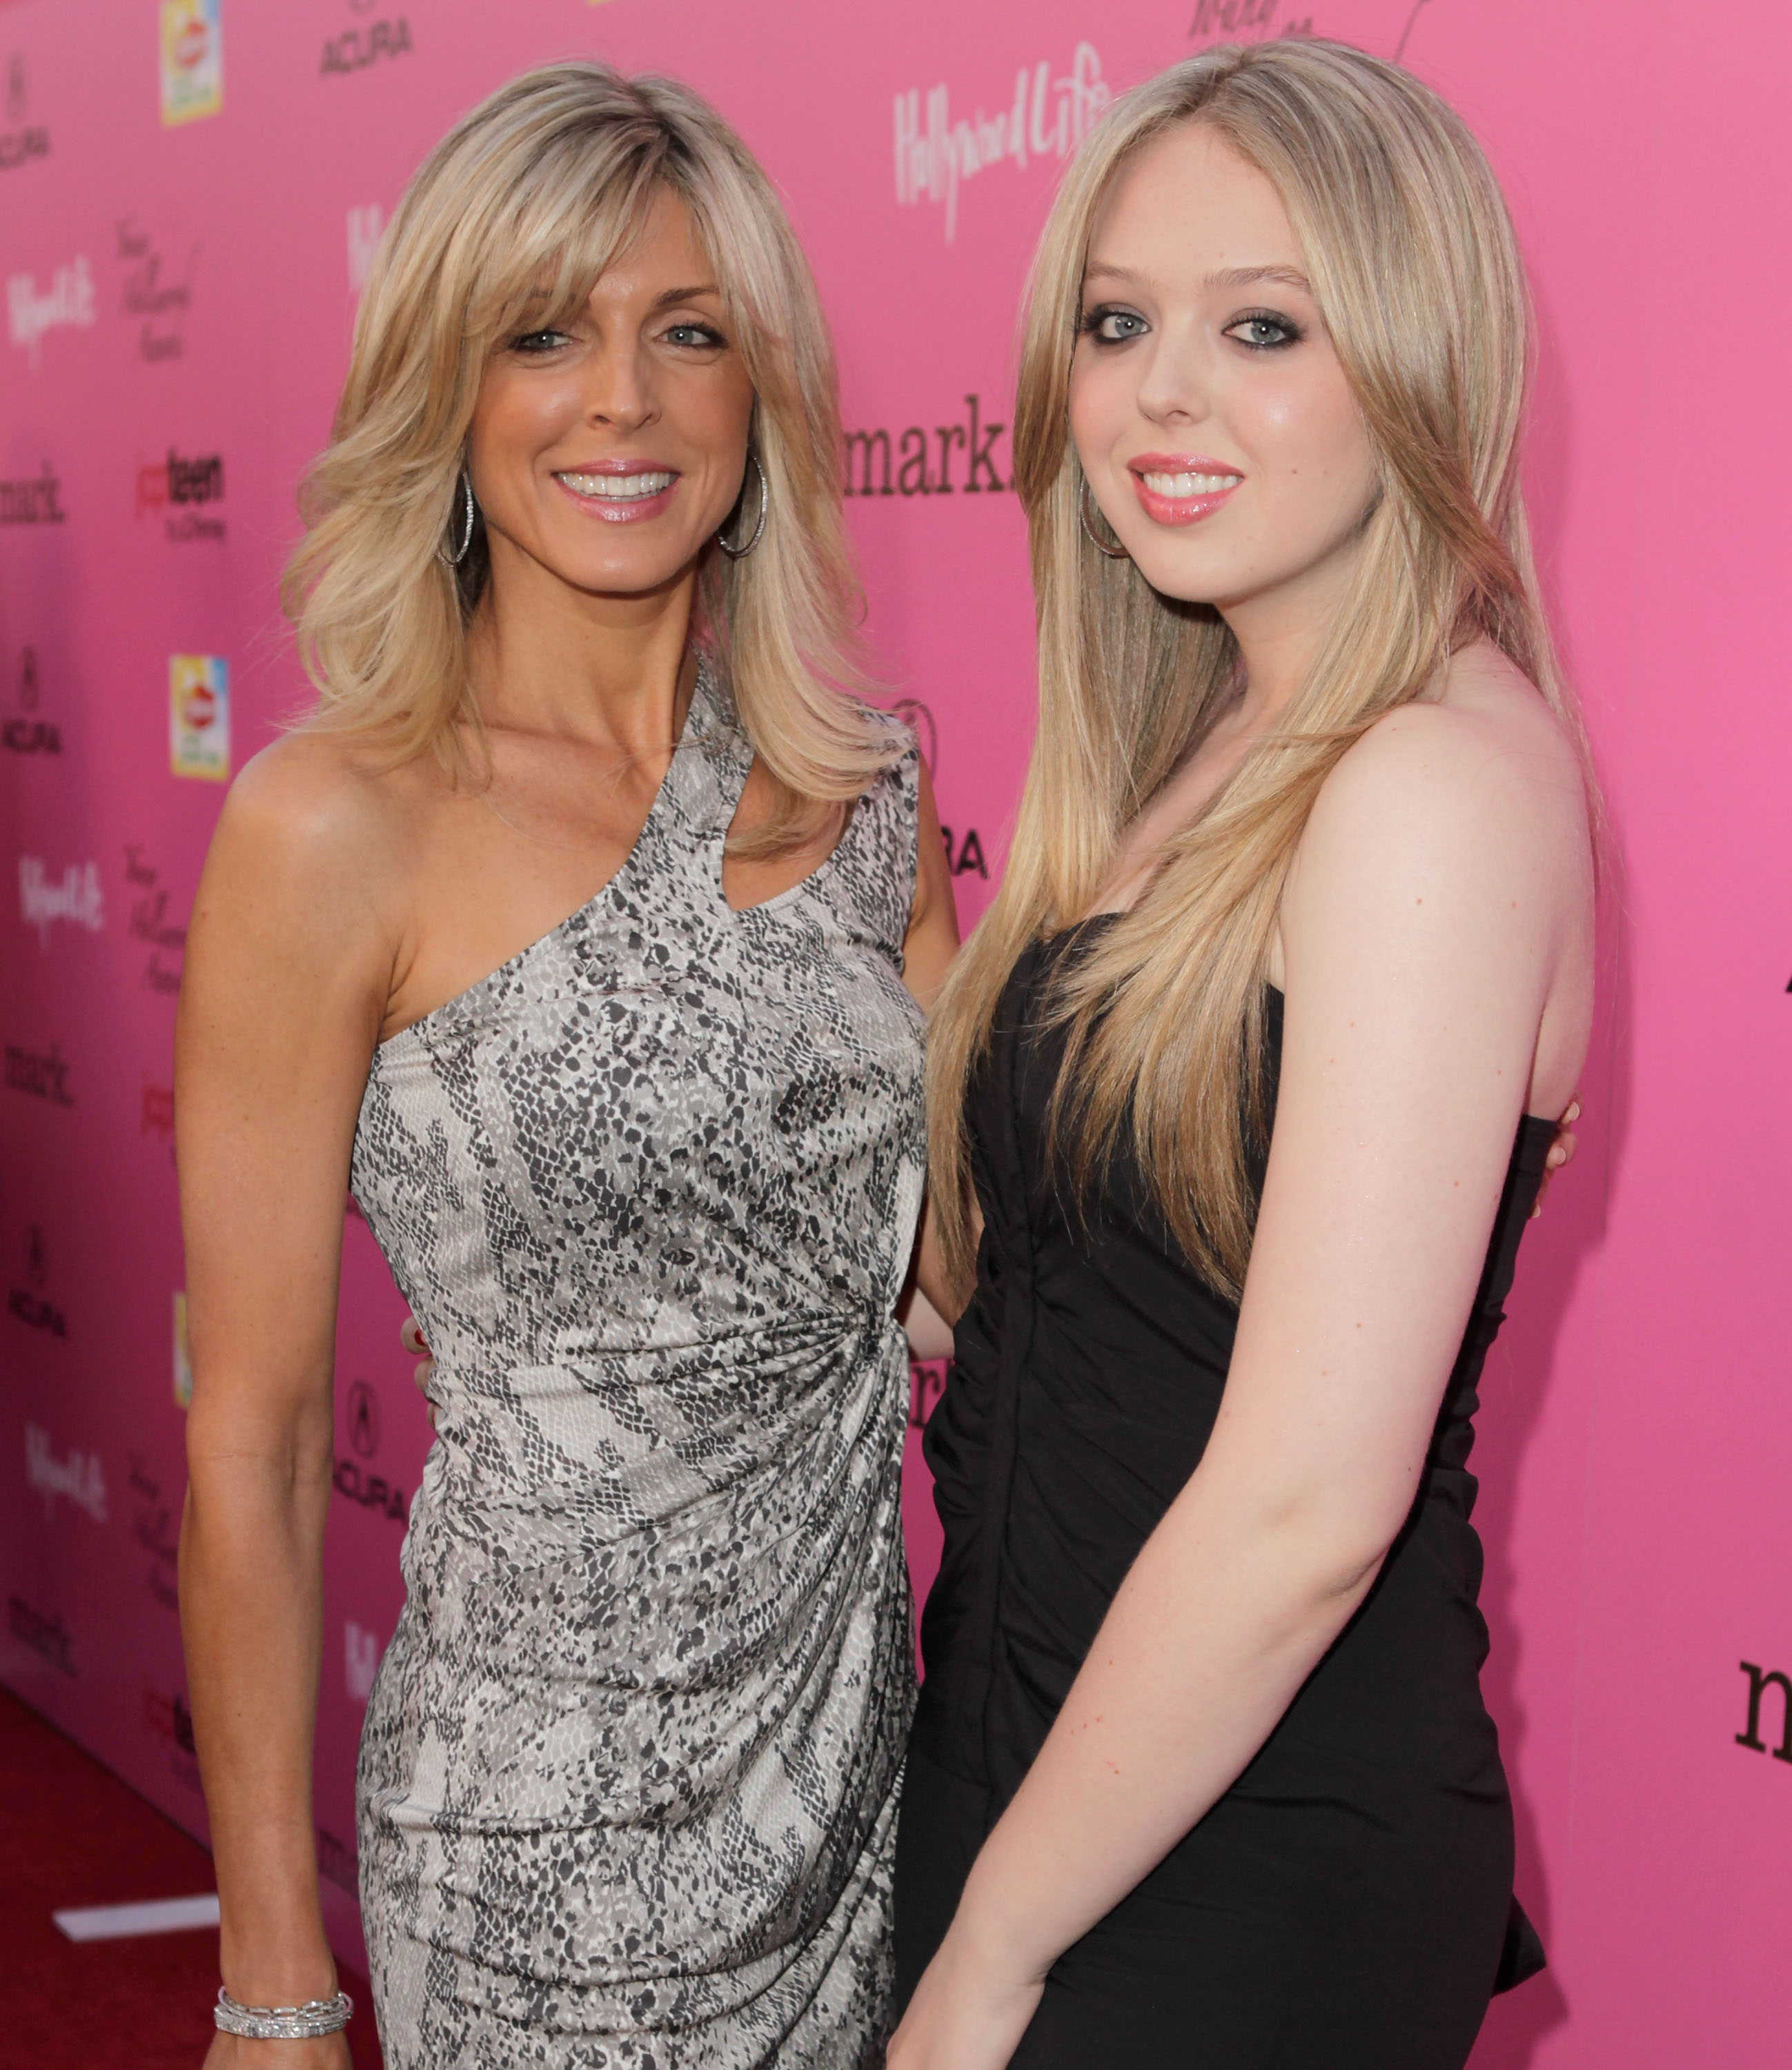 Marla Maples and daughter Tiffany Trump are said to have asked a stylist to do their hair for free. Image: Getty.